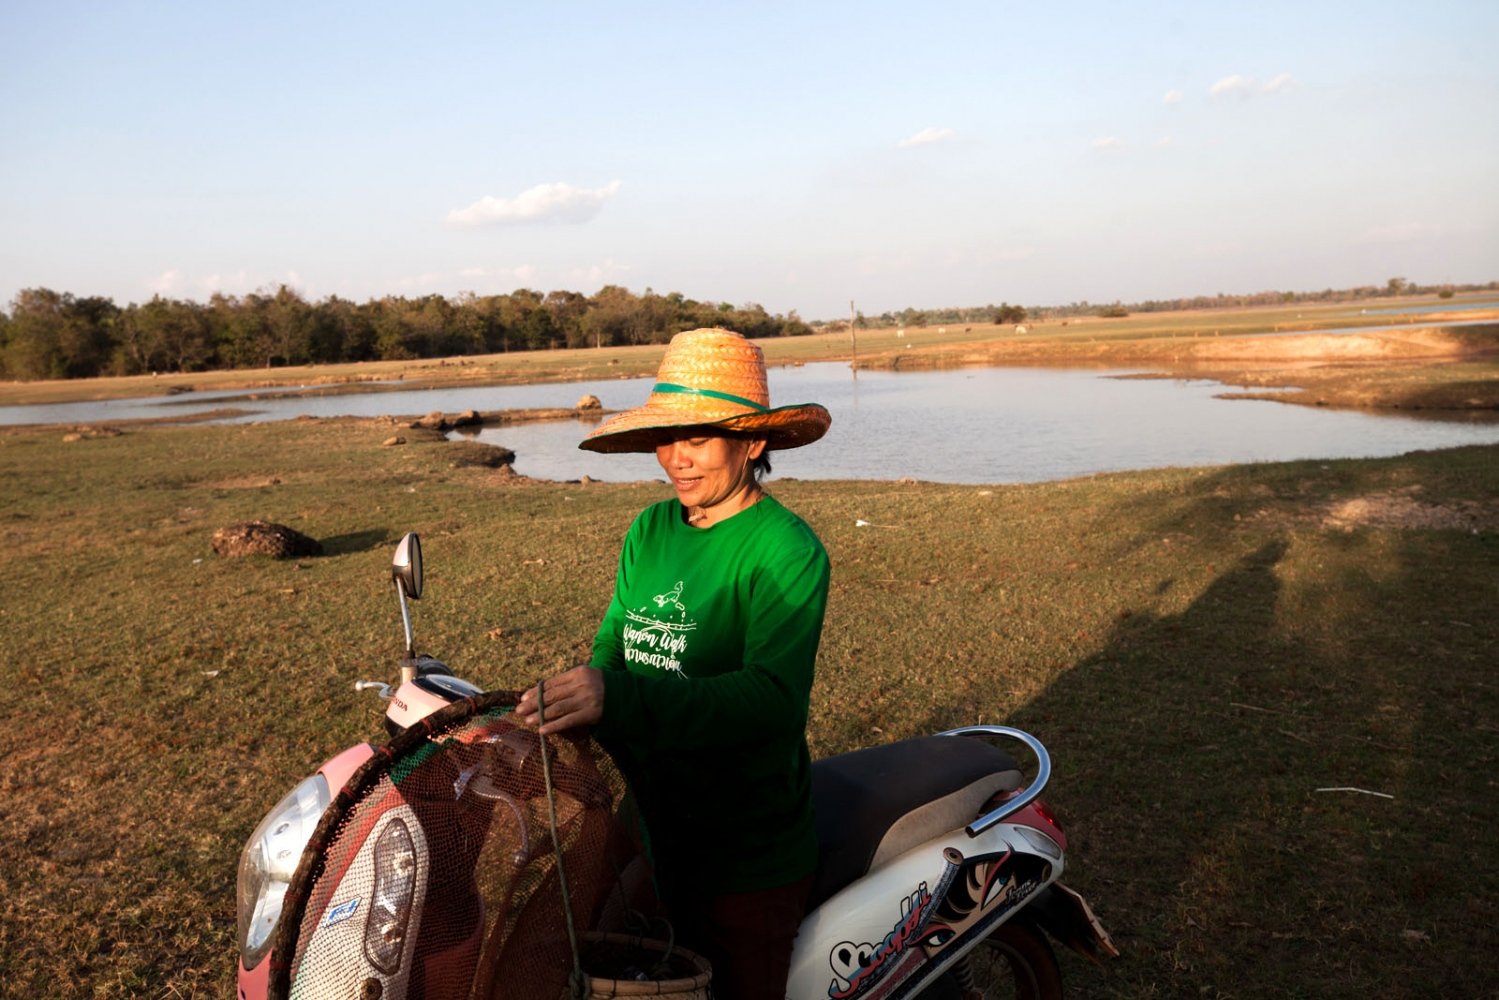 Ratawan Panta, 43, returns to her house on her motorcycle after an afternoon of catching shellfish and shrimp in the lake behind her. She wears the communities anti-potash mining shirt that has become symbolic with their struggle against a Chinese potash mining company.